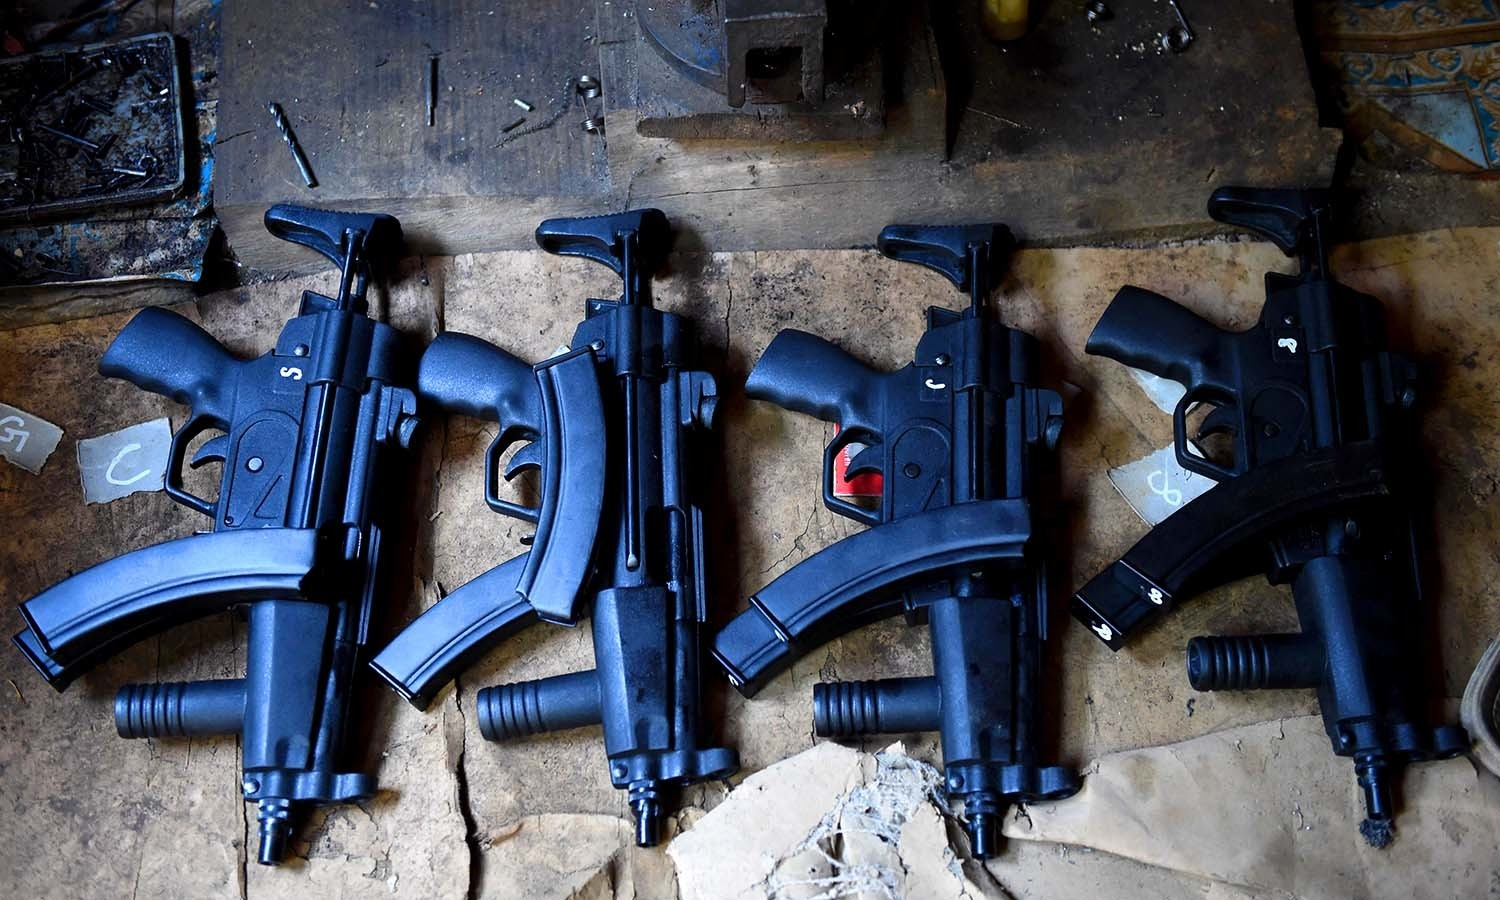 Replicas of Turkish and Bulgarian made MP5 submachine guns are seen at a workshop. ─AFP